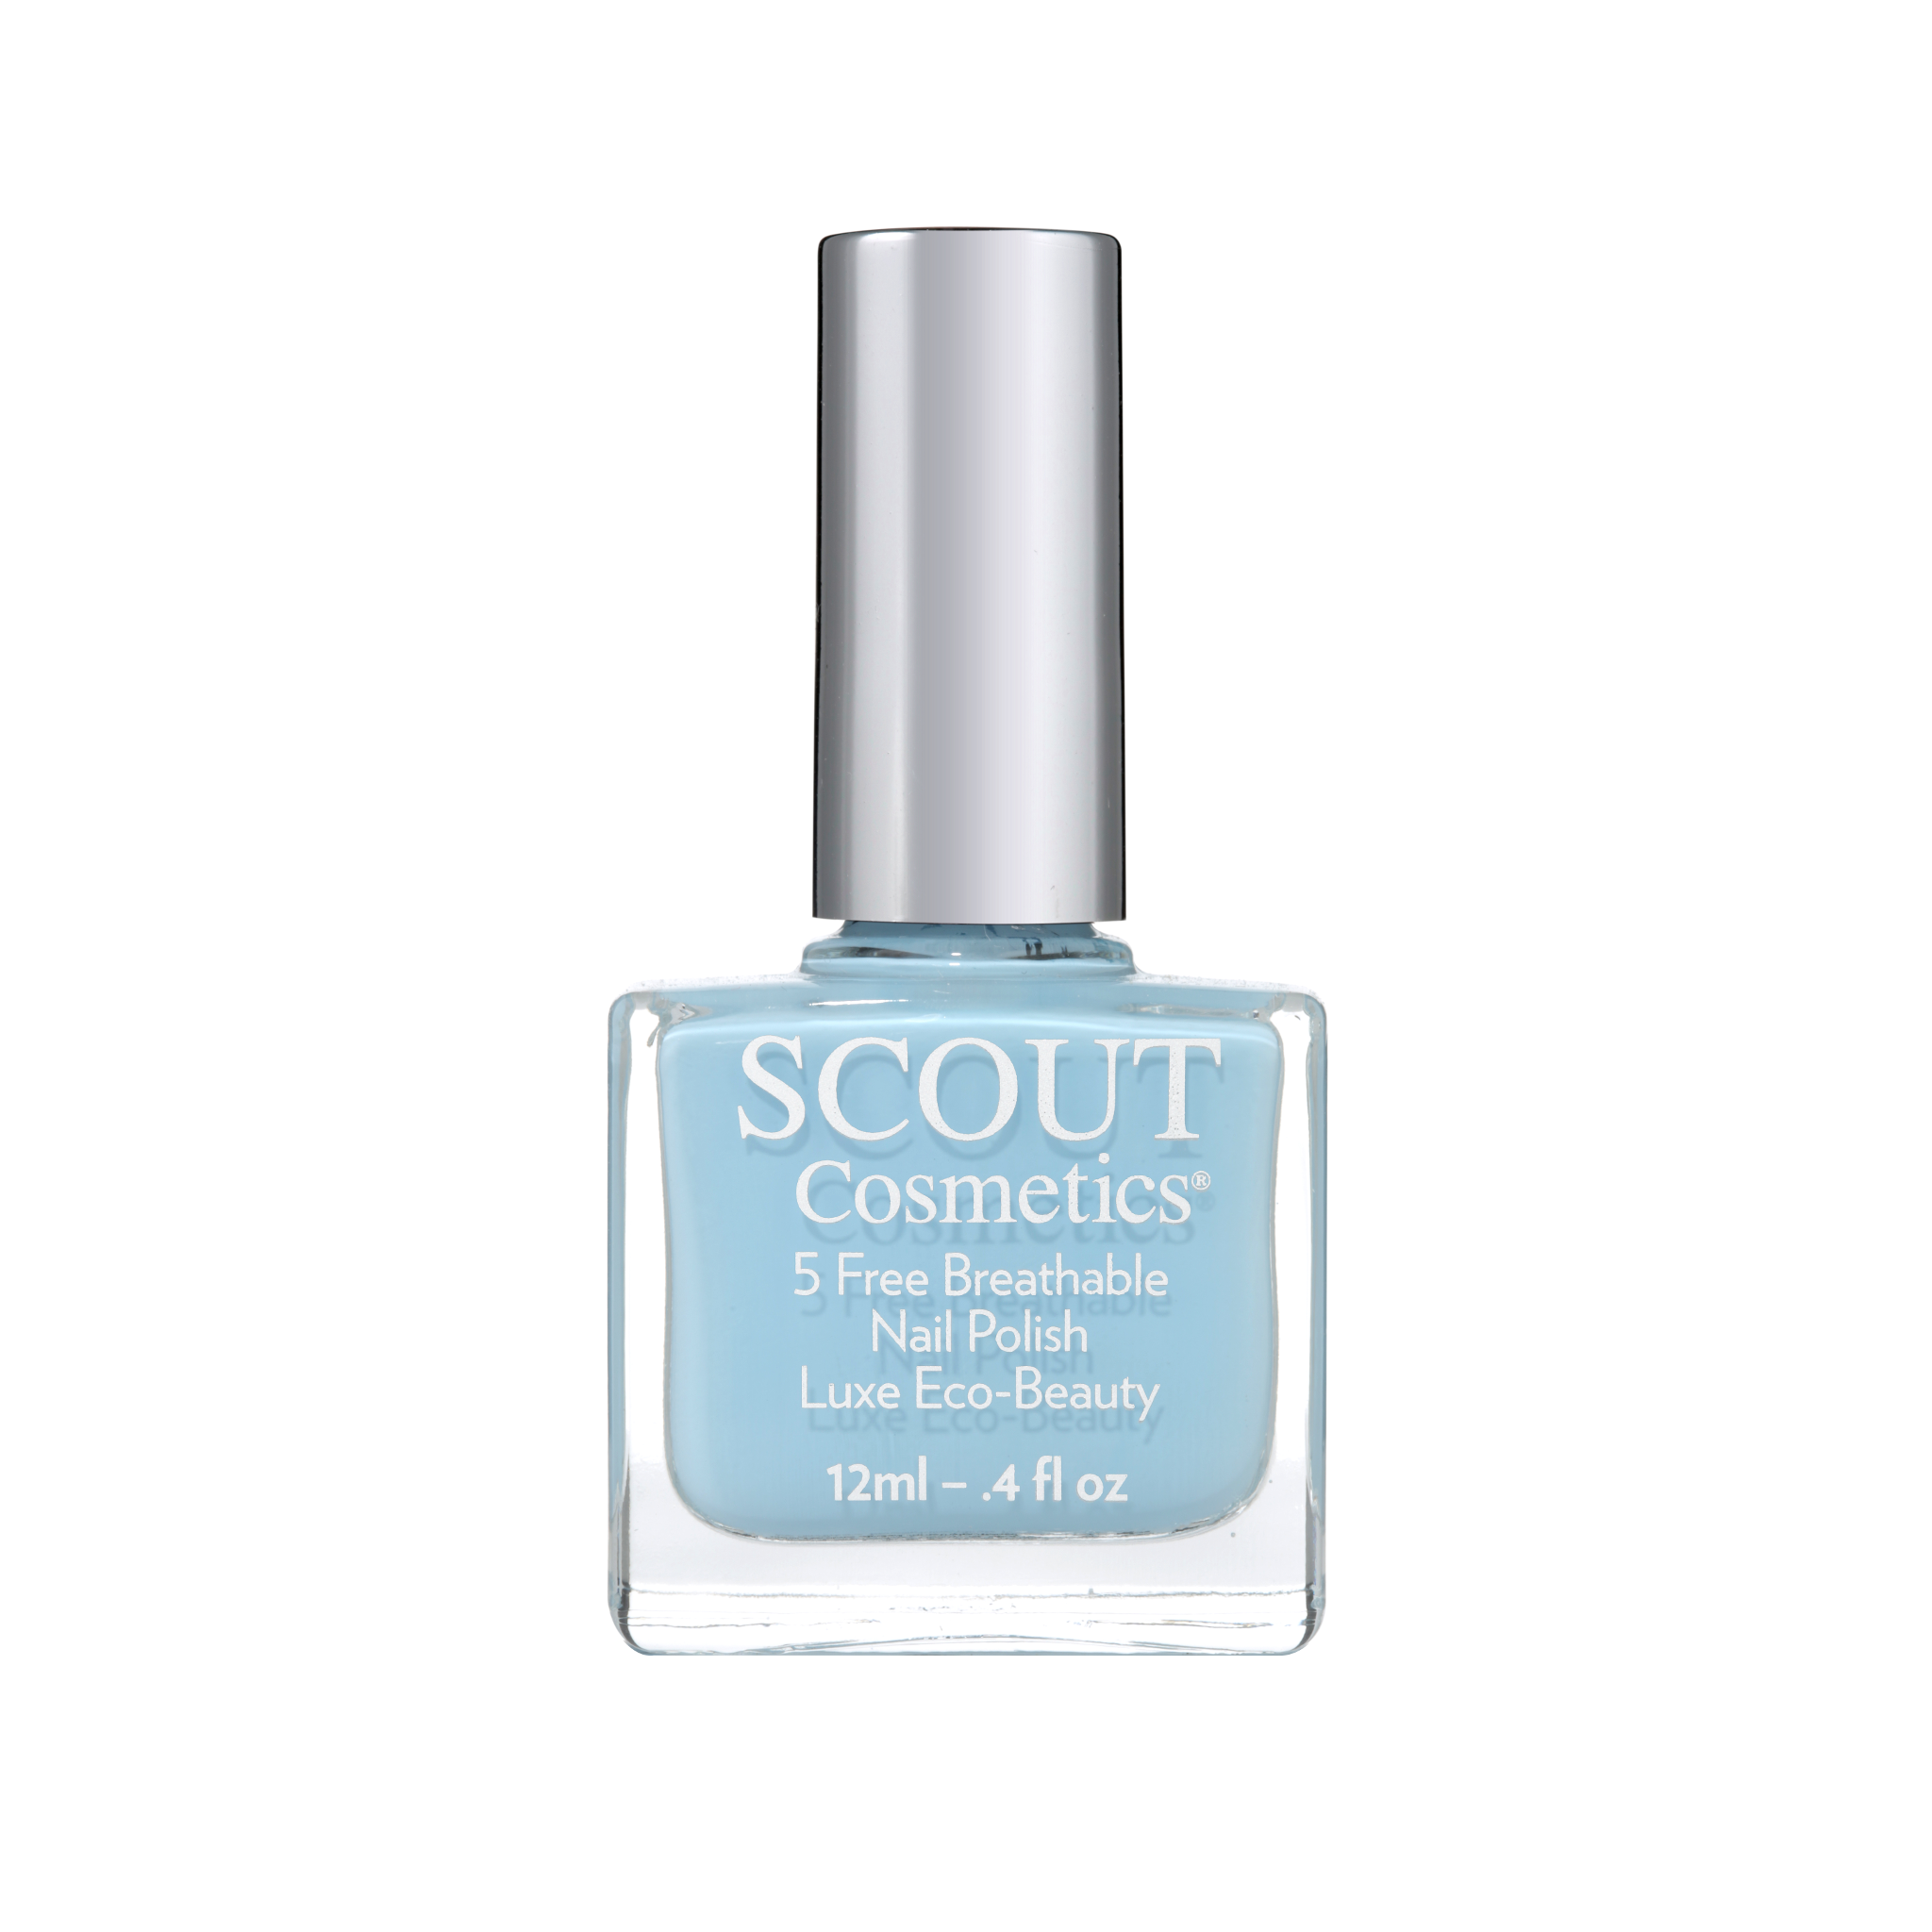 SCOUT Cosmetics Nail Polish - Don't You Forget About Me